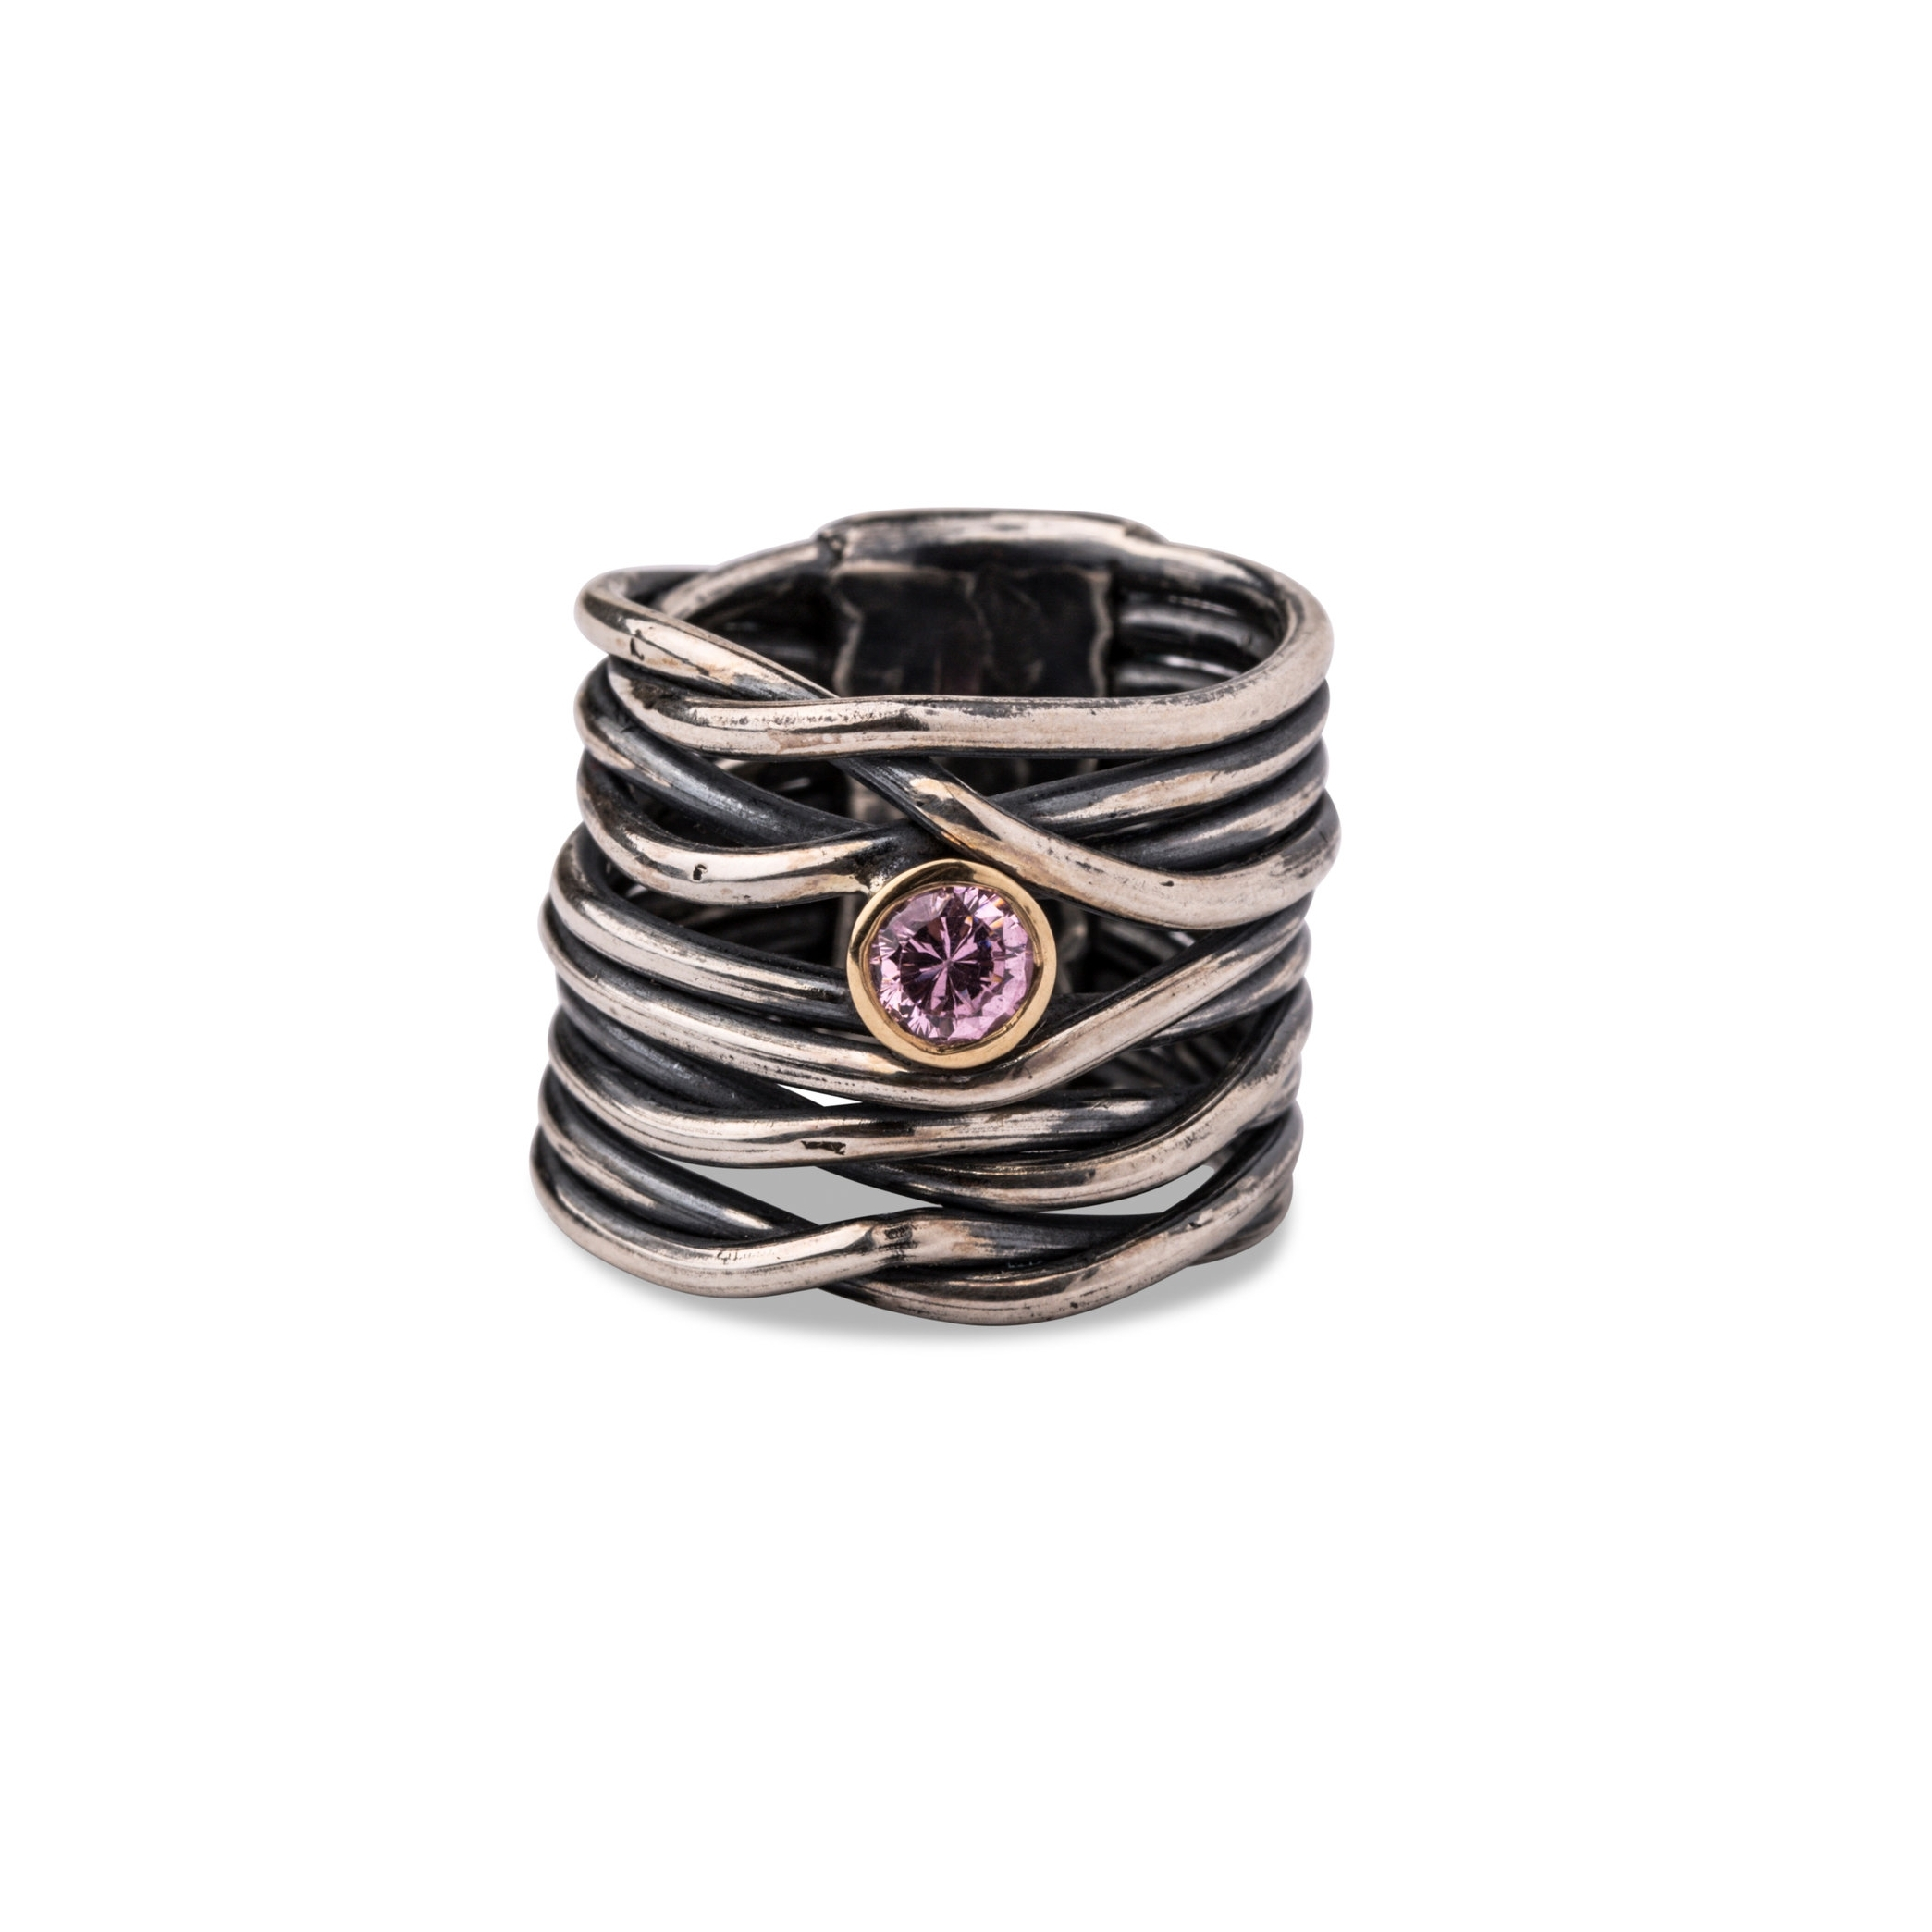 ring_lace_6200.JPG